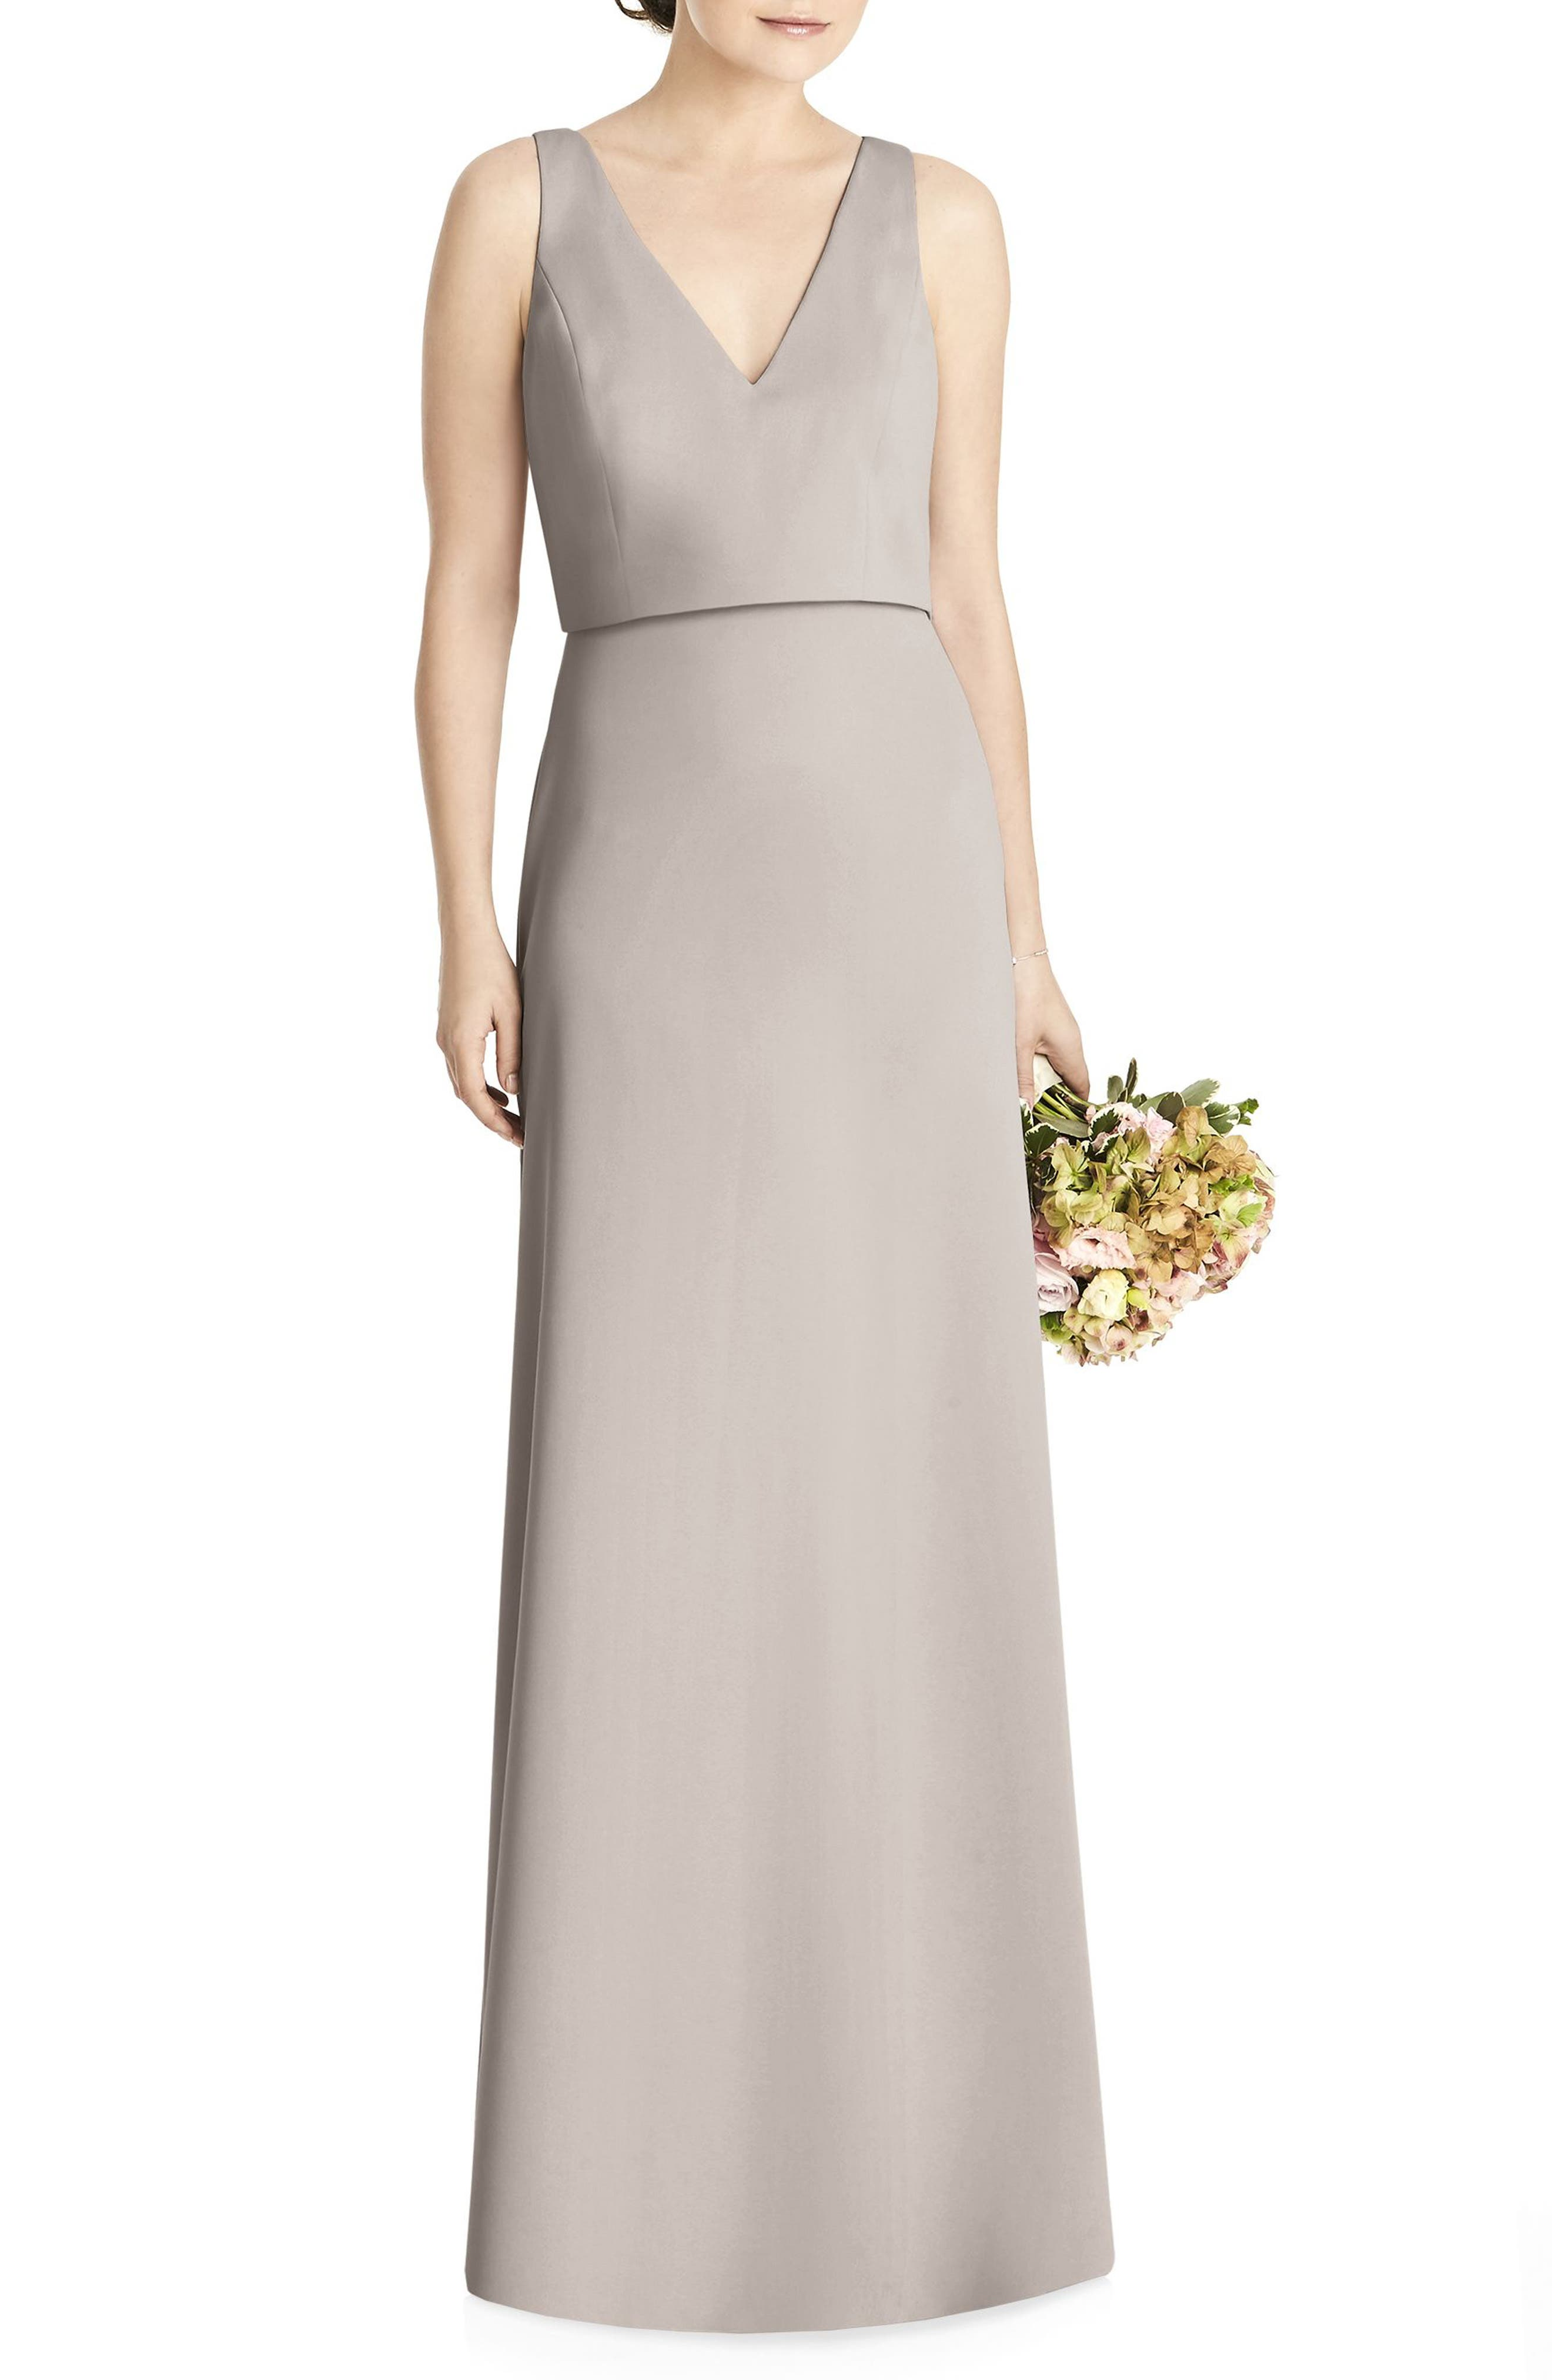 JY JENNY YOO, Tie Back Crepe Gown, Main thumbnail 1, color, TAUPE